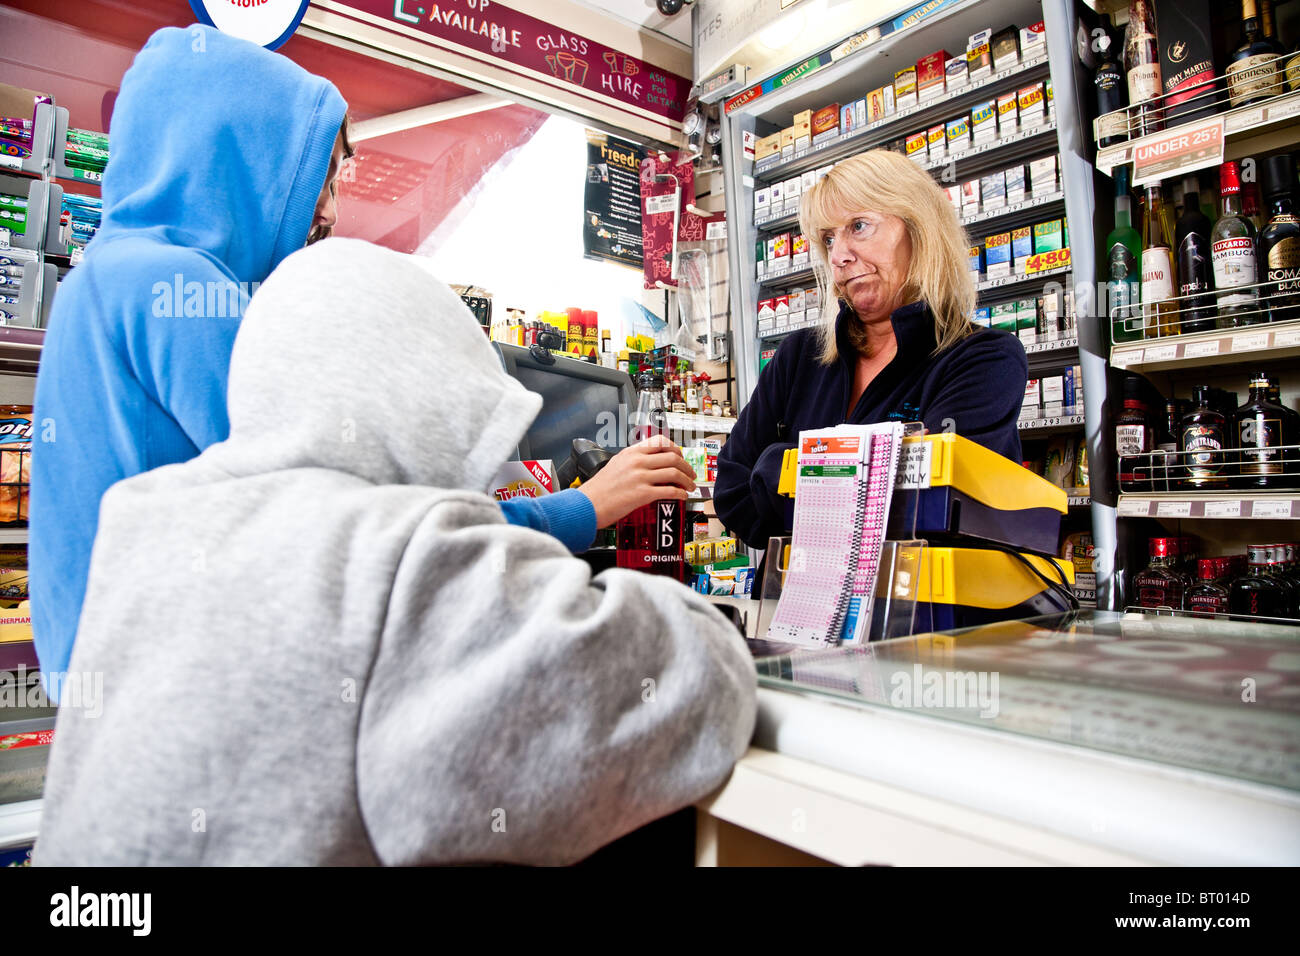 Children trying to buy alcohol in a convenience store - Stock Image